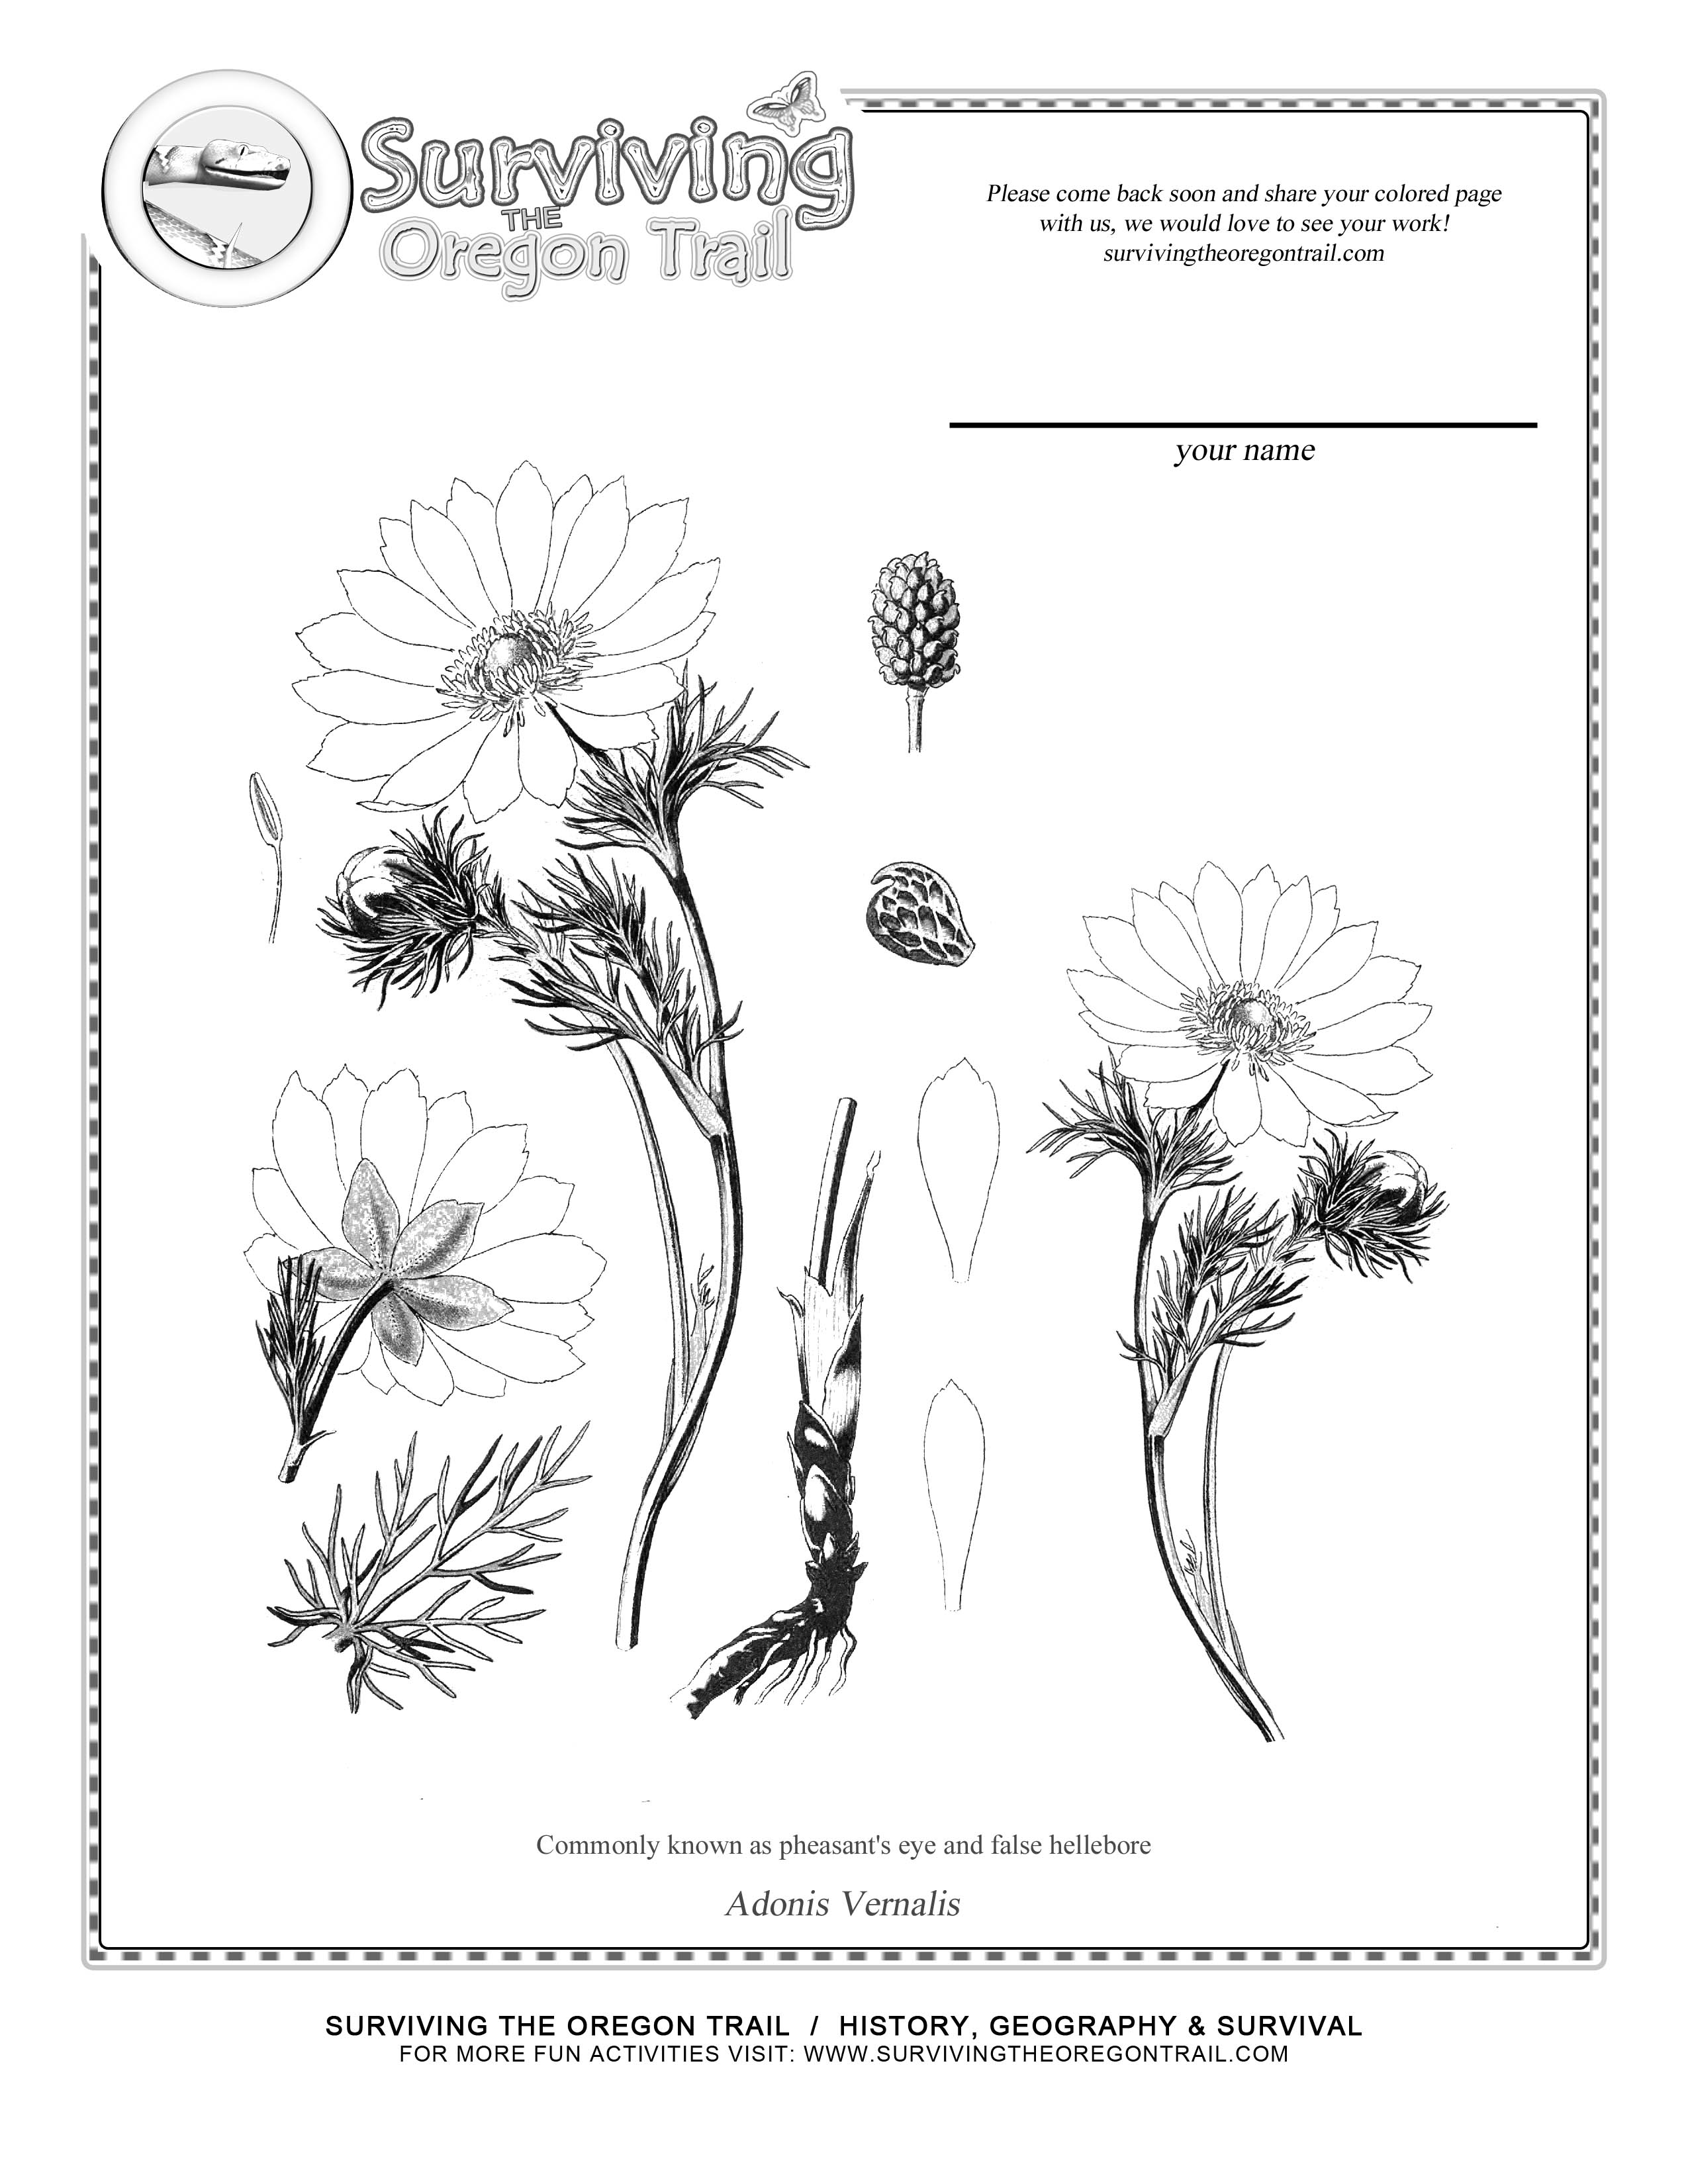 free coloring page of the beautiful adonis vernalis plant and flower commonly known as pheasants eye and false hellebore help your child become more